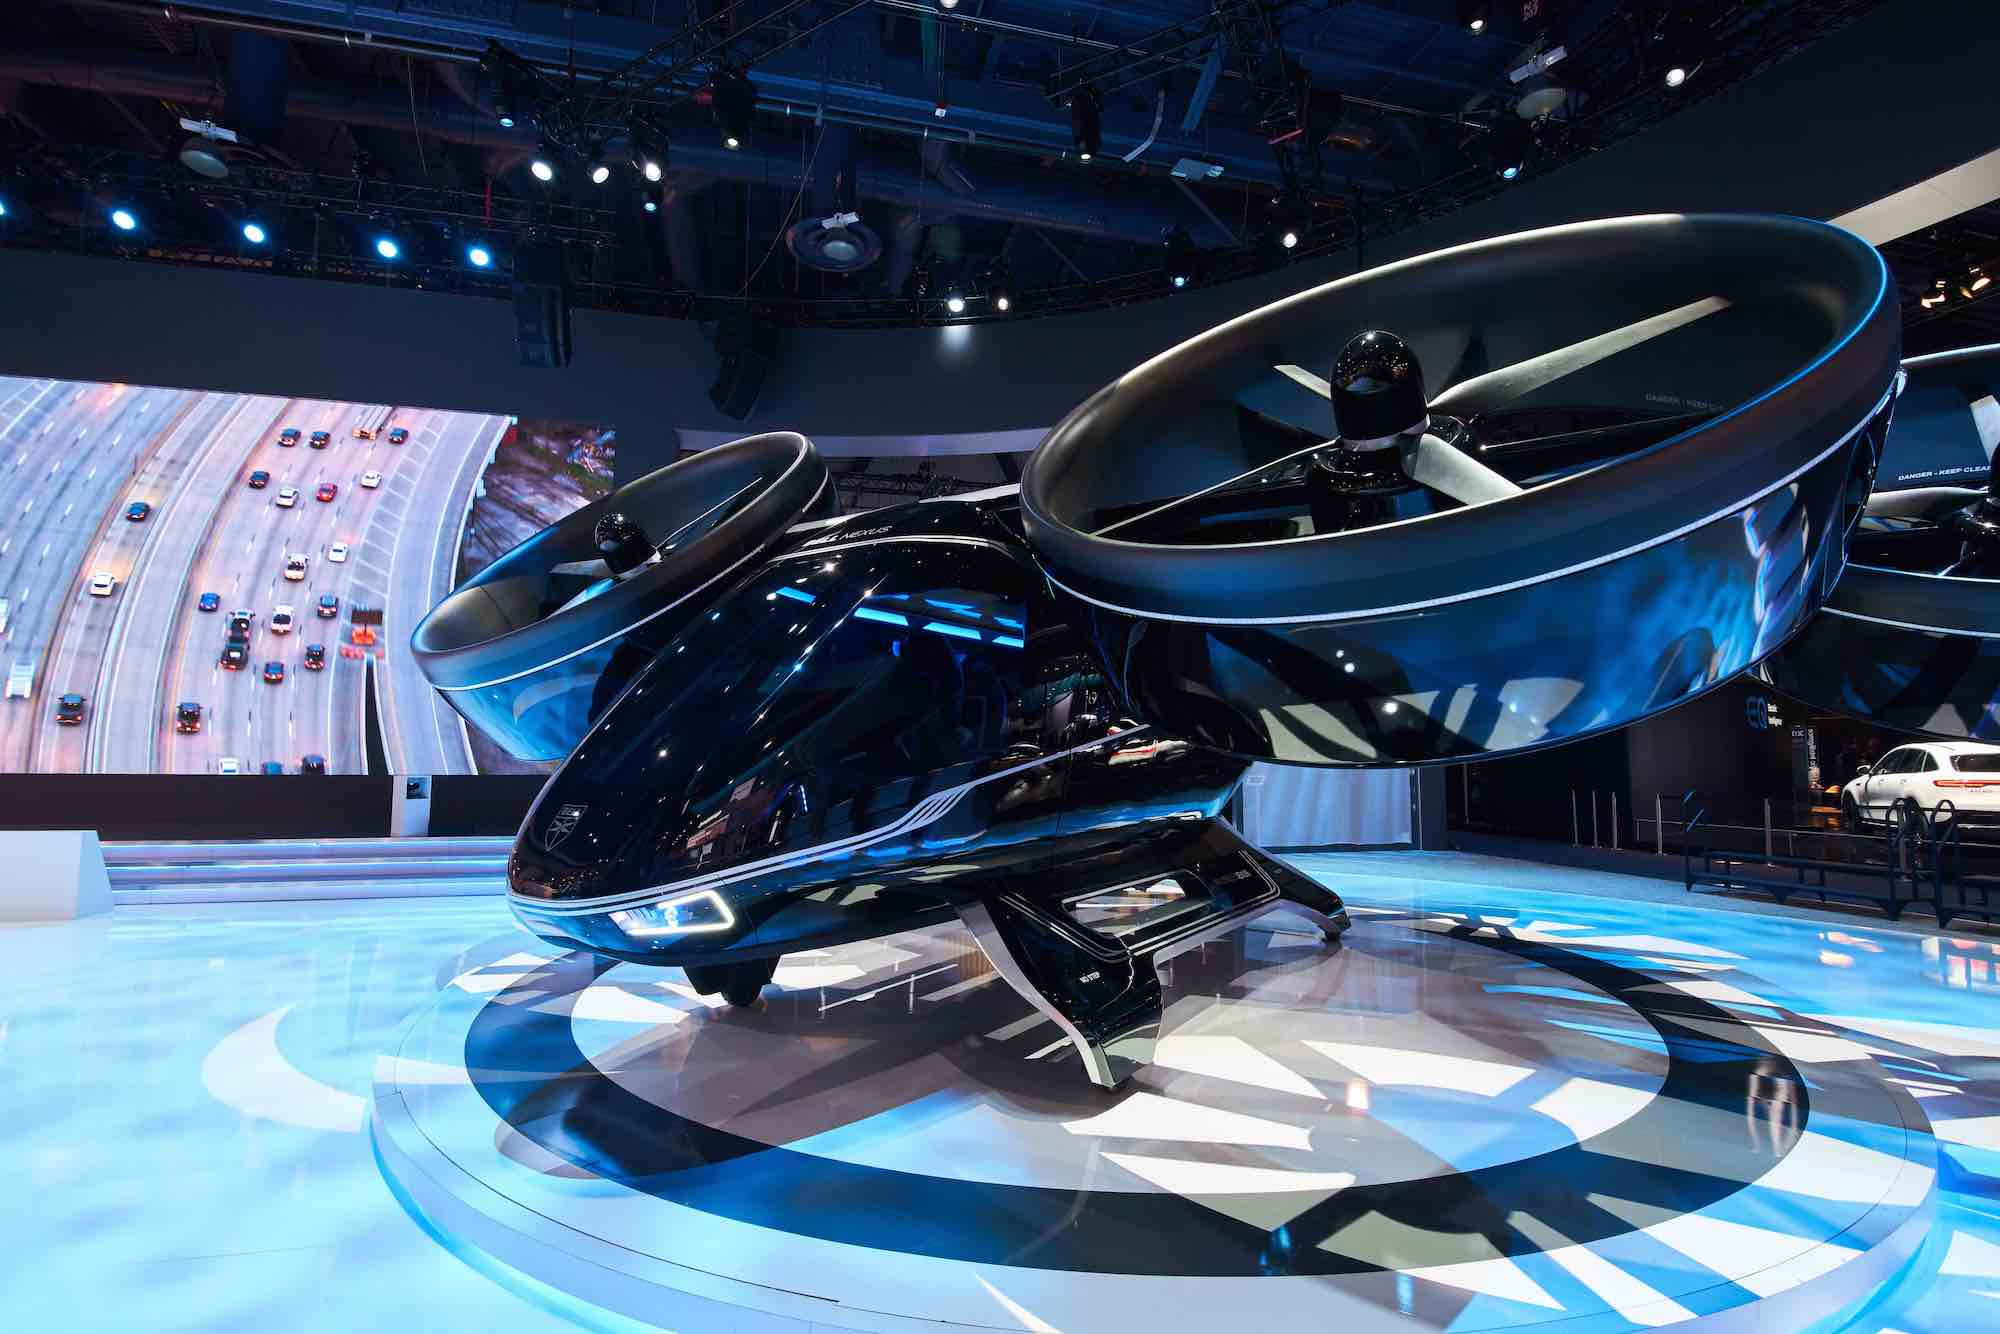 Bell Embraces Virtual Reality To Design Helicopters General Aviation News Aviation International News